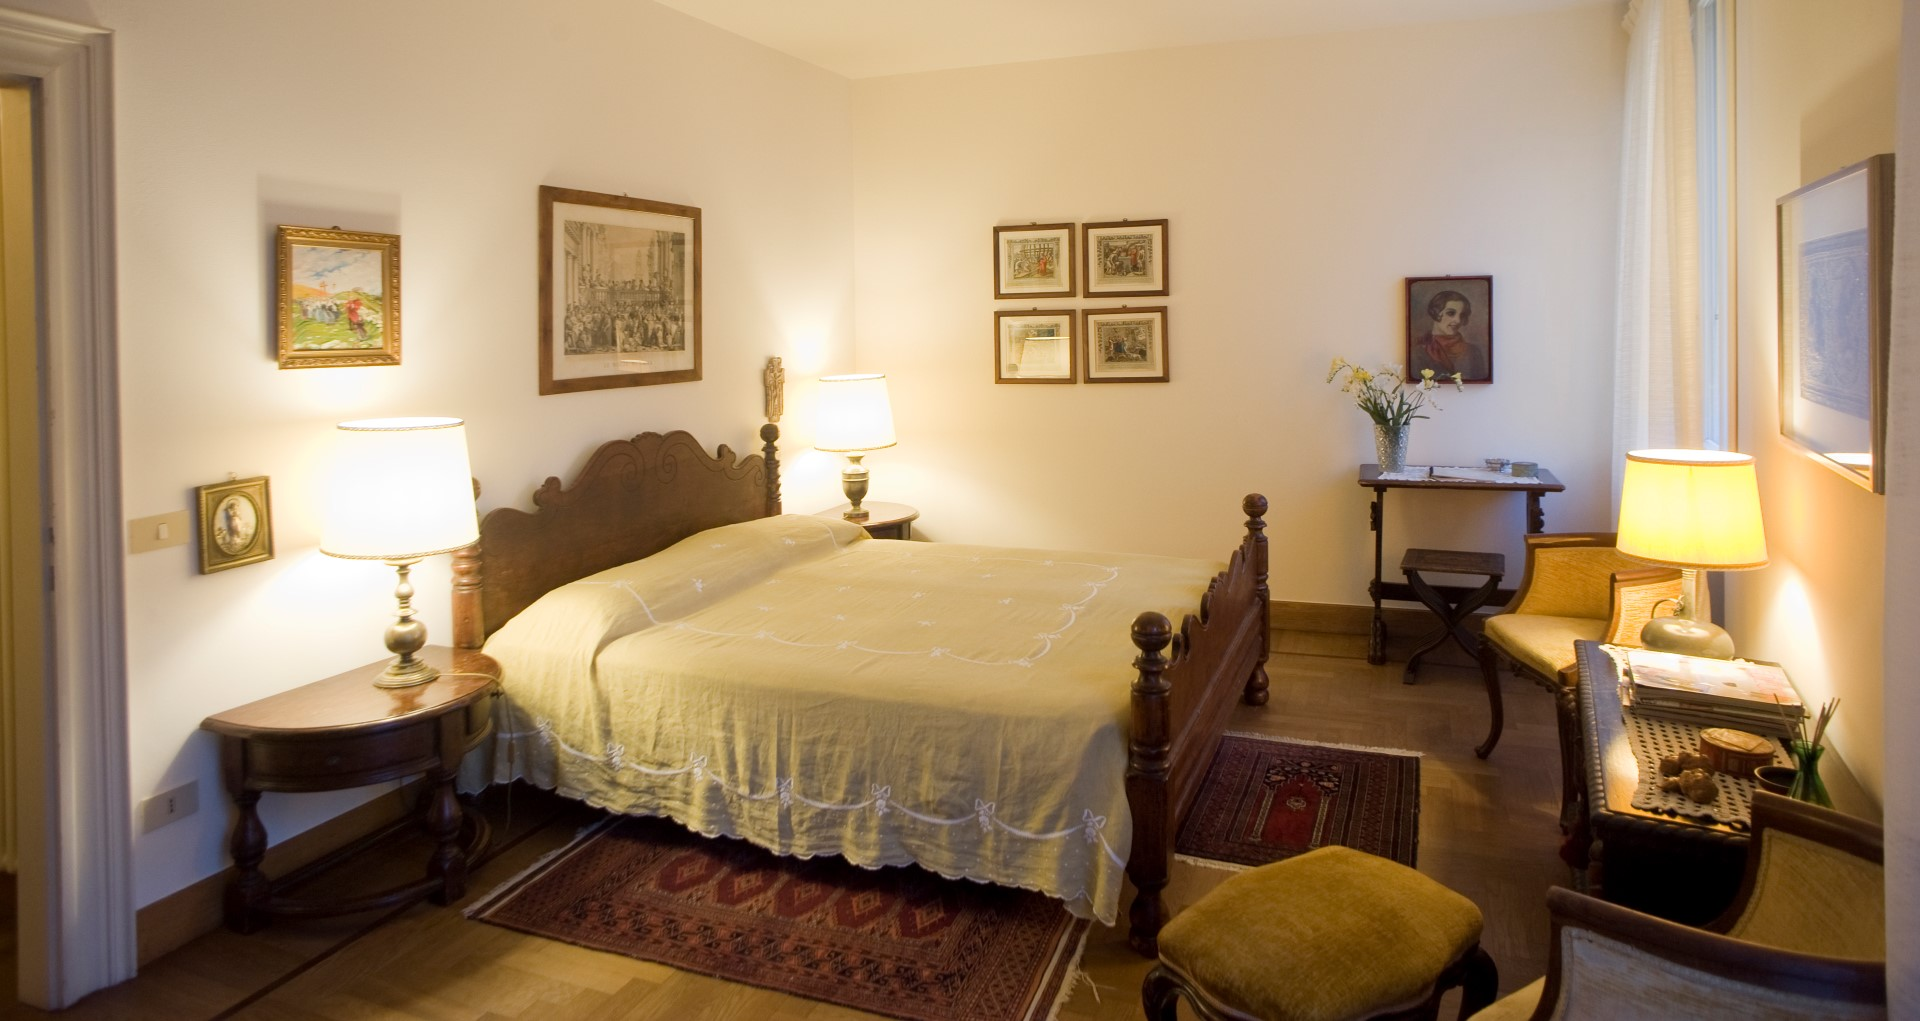 B&b al ponte Vicenza camera matrimoniale 04